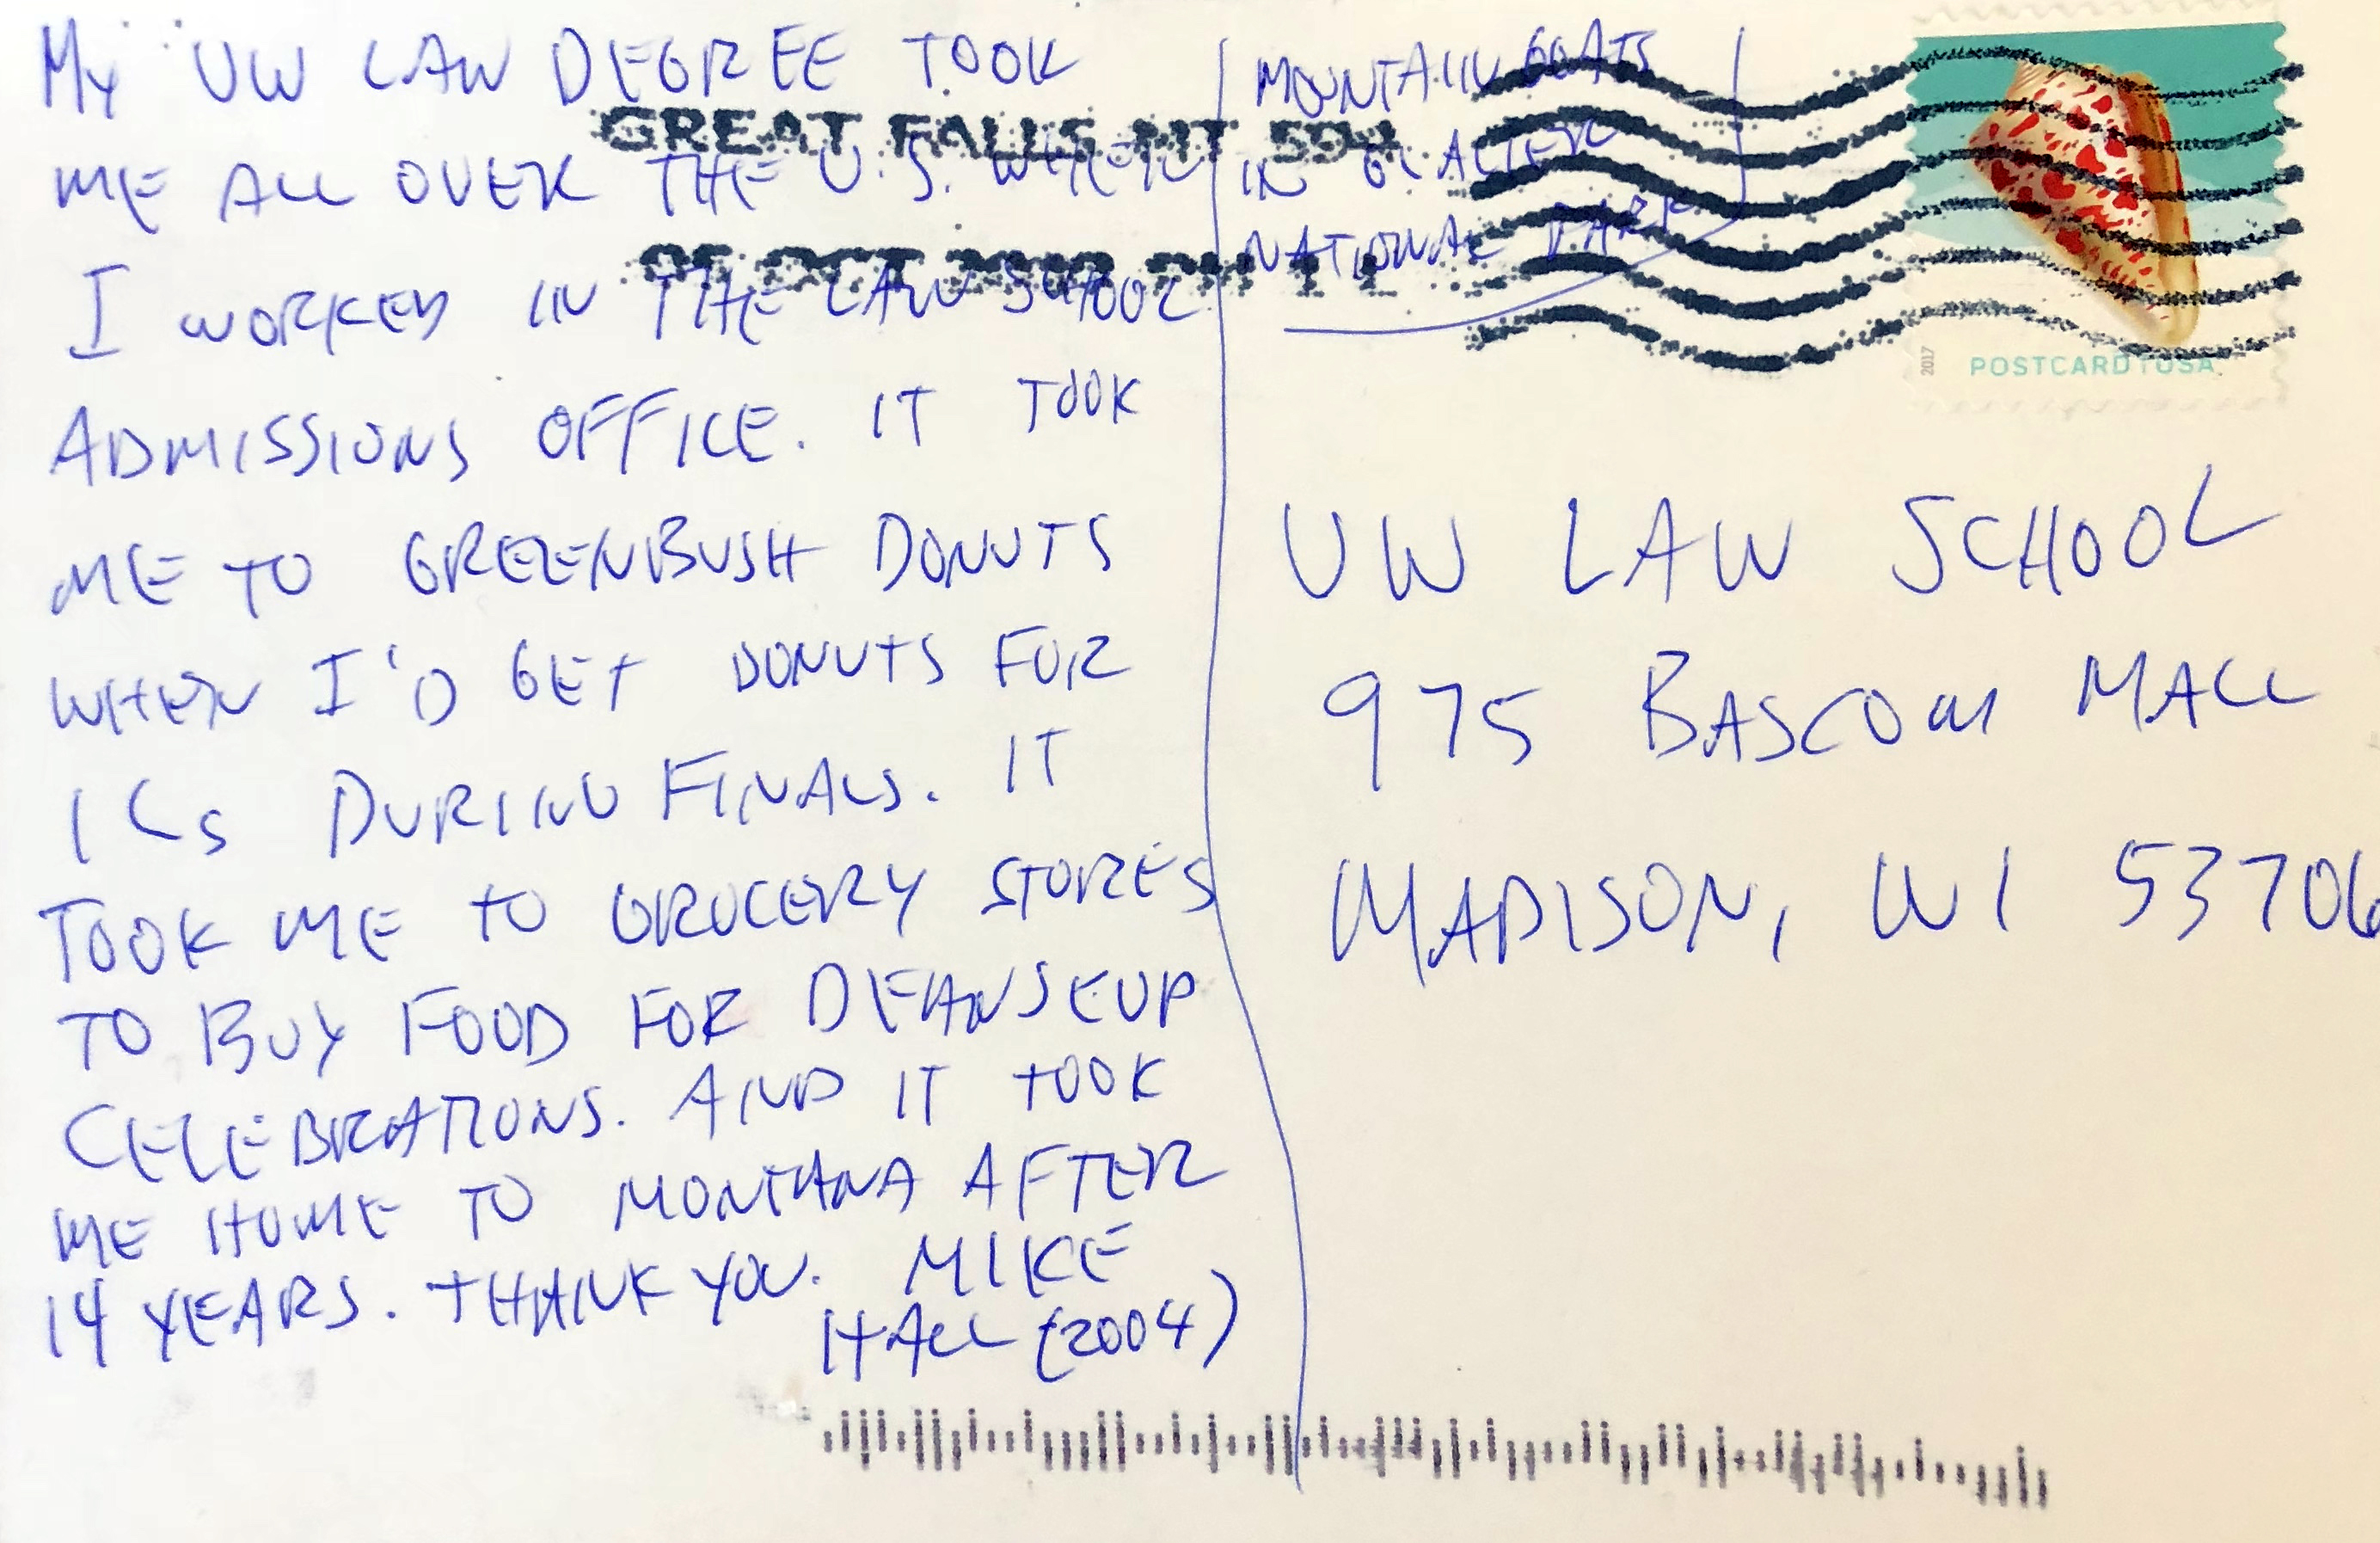 Postcard from Mike Hall '04